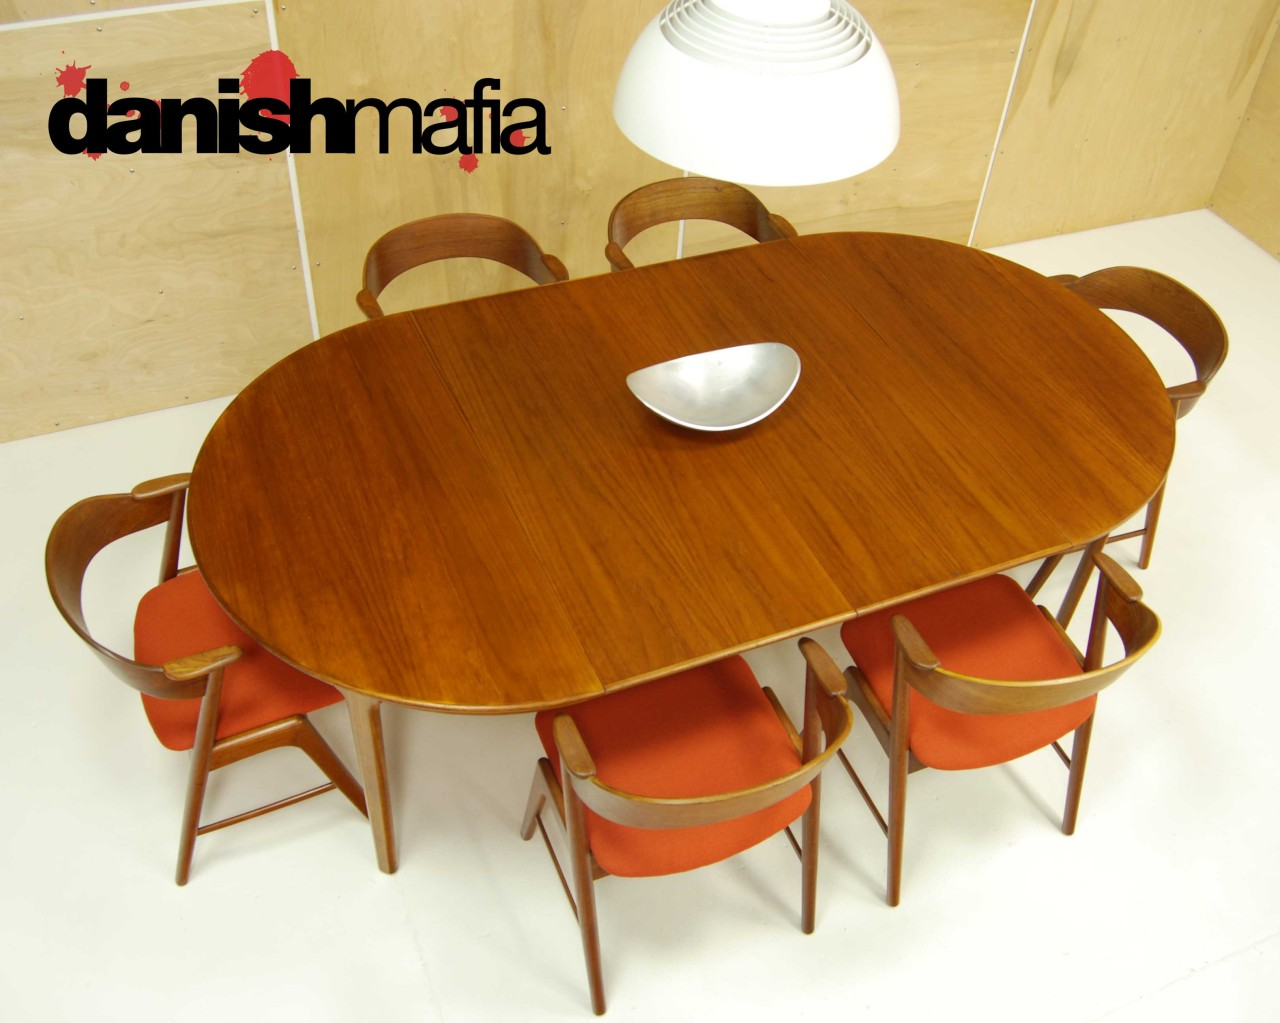 MID CENTURY DANISH MODERN OVAL TEAK DINING TABLE W LEAVES - Modern oval dining table with leaf